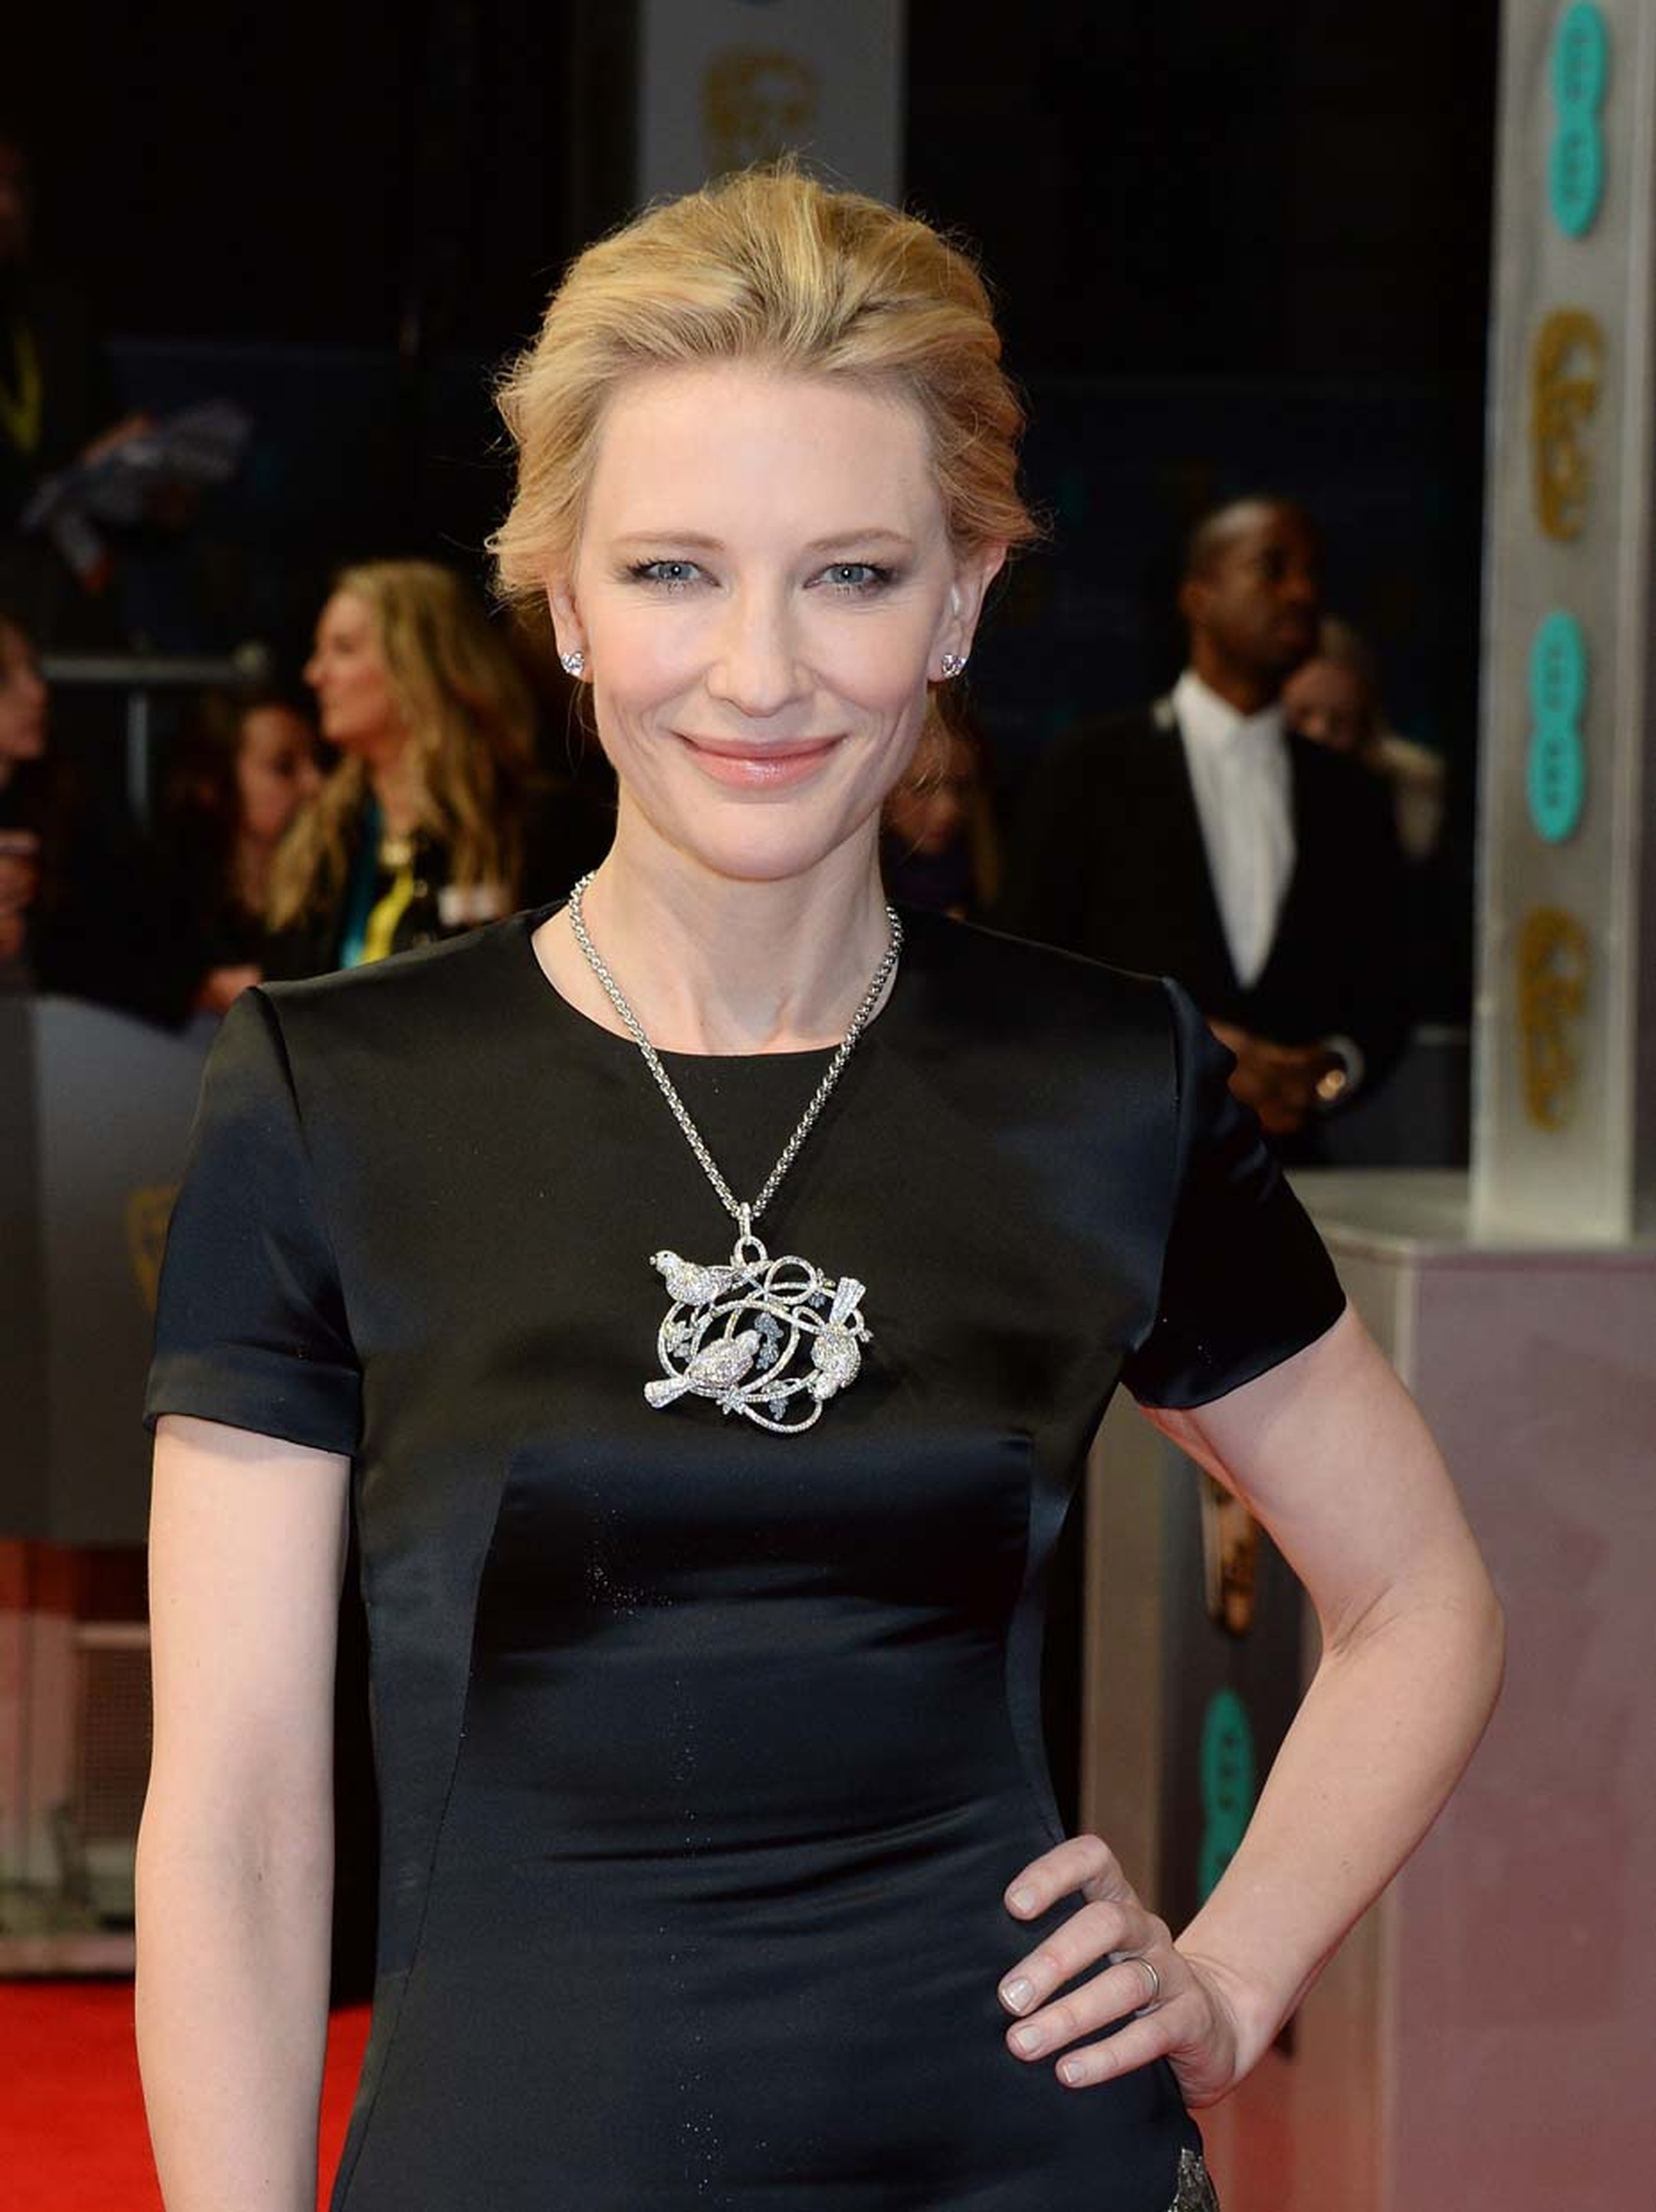 Cate Blanchett stole the show at the 2014 BAFTAS wearing the saucer-sized pendant necklace featuring three diamond doves from Chopard's Animal World jewellery collection.